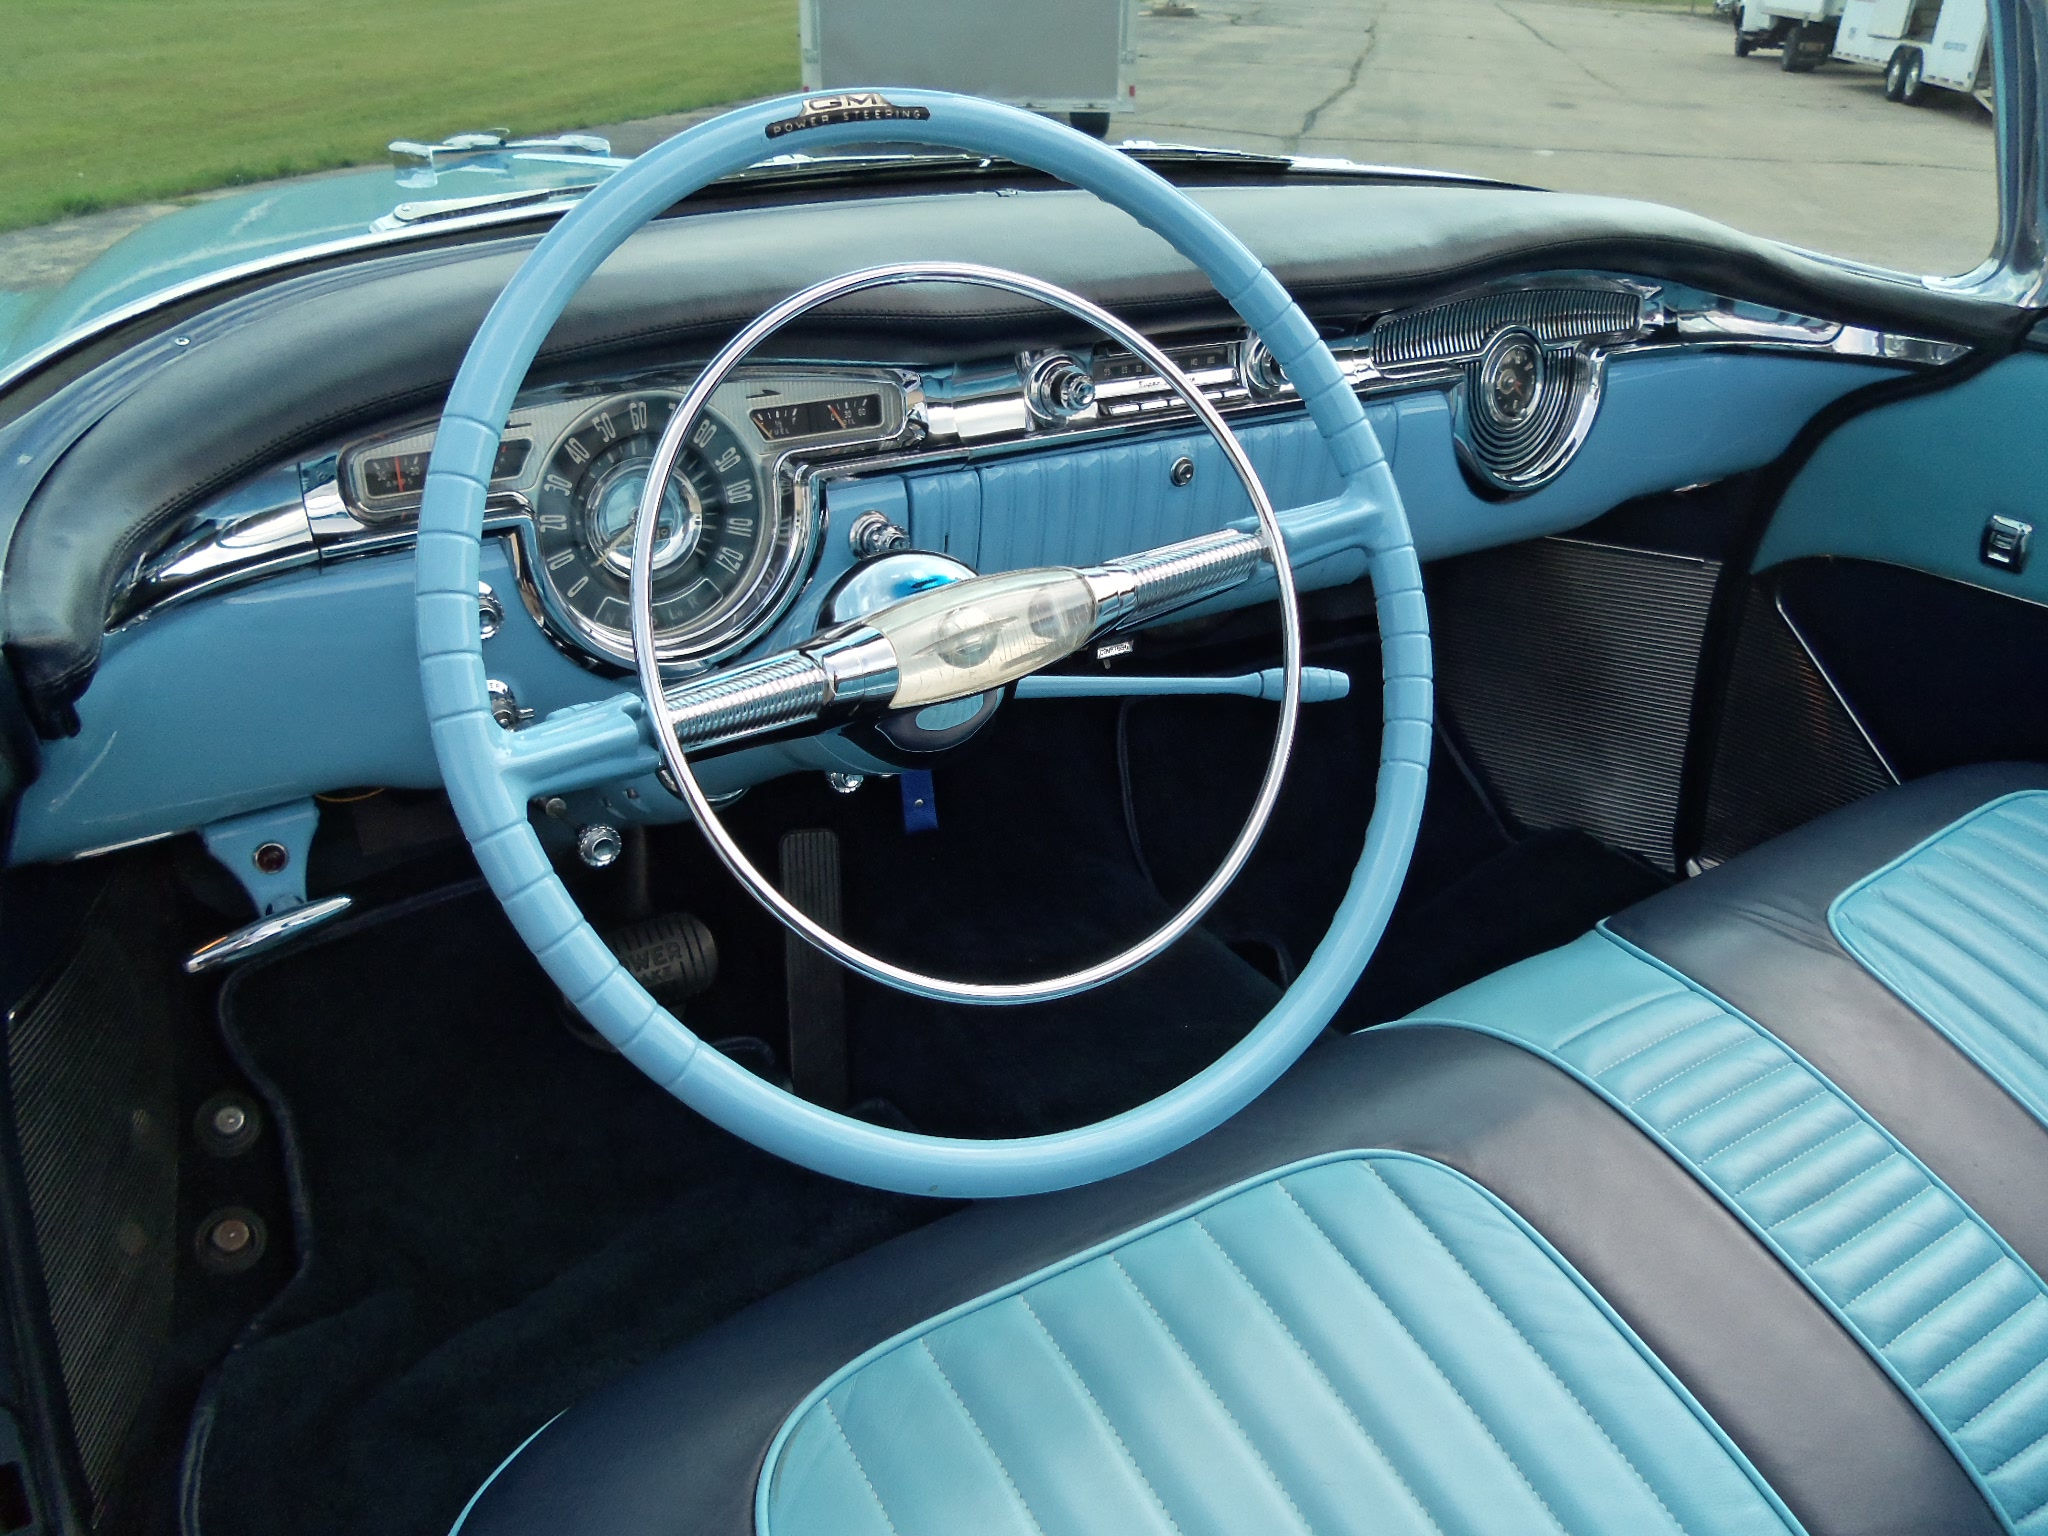 1954 Oldsmobile 98 Starfire Convertible Top Notch Vehicles 1941 Ninety Eight 019 023 024